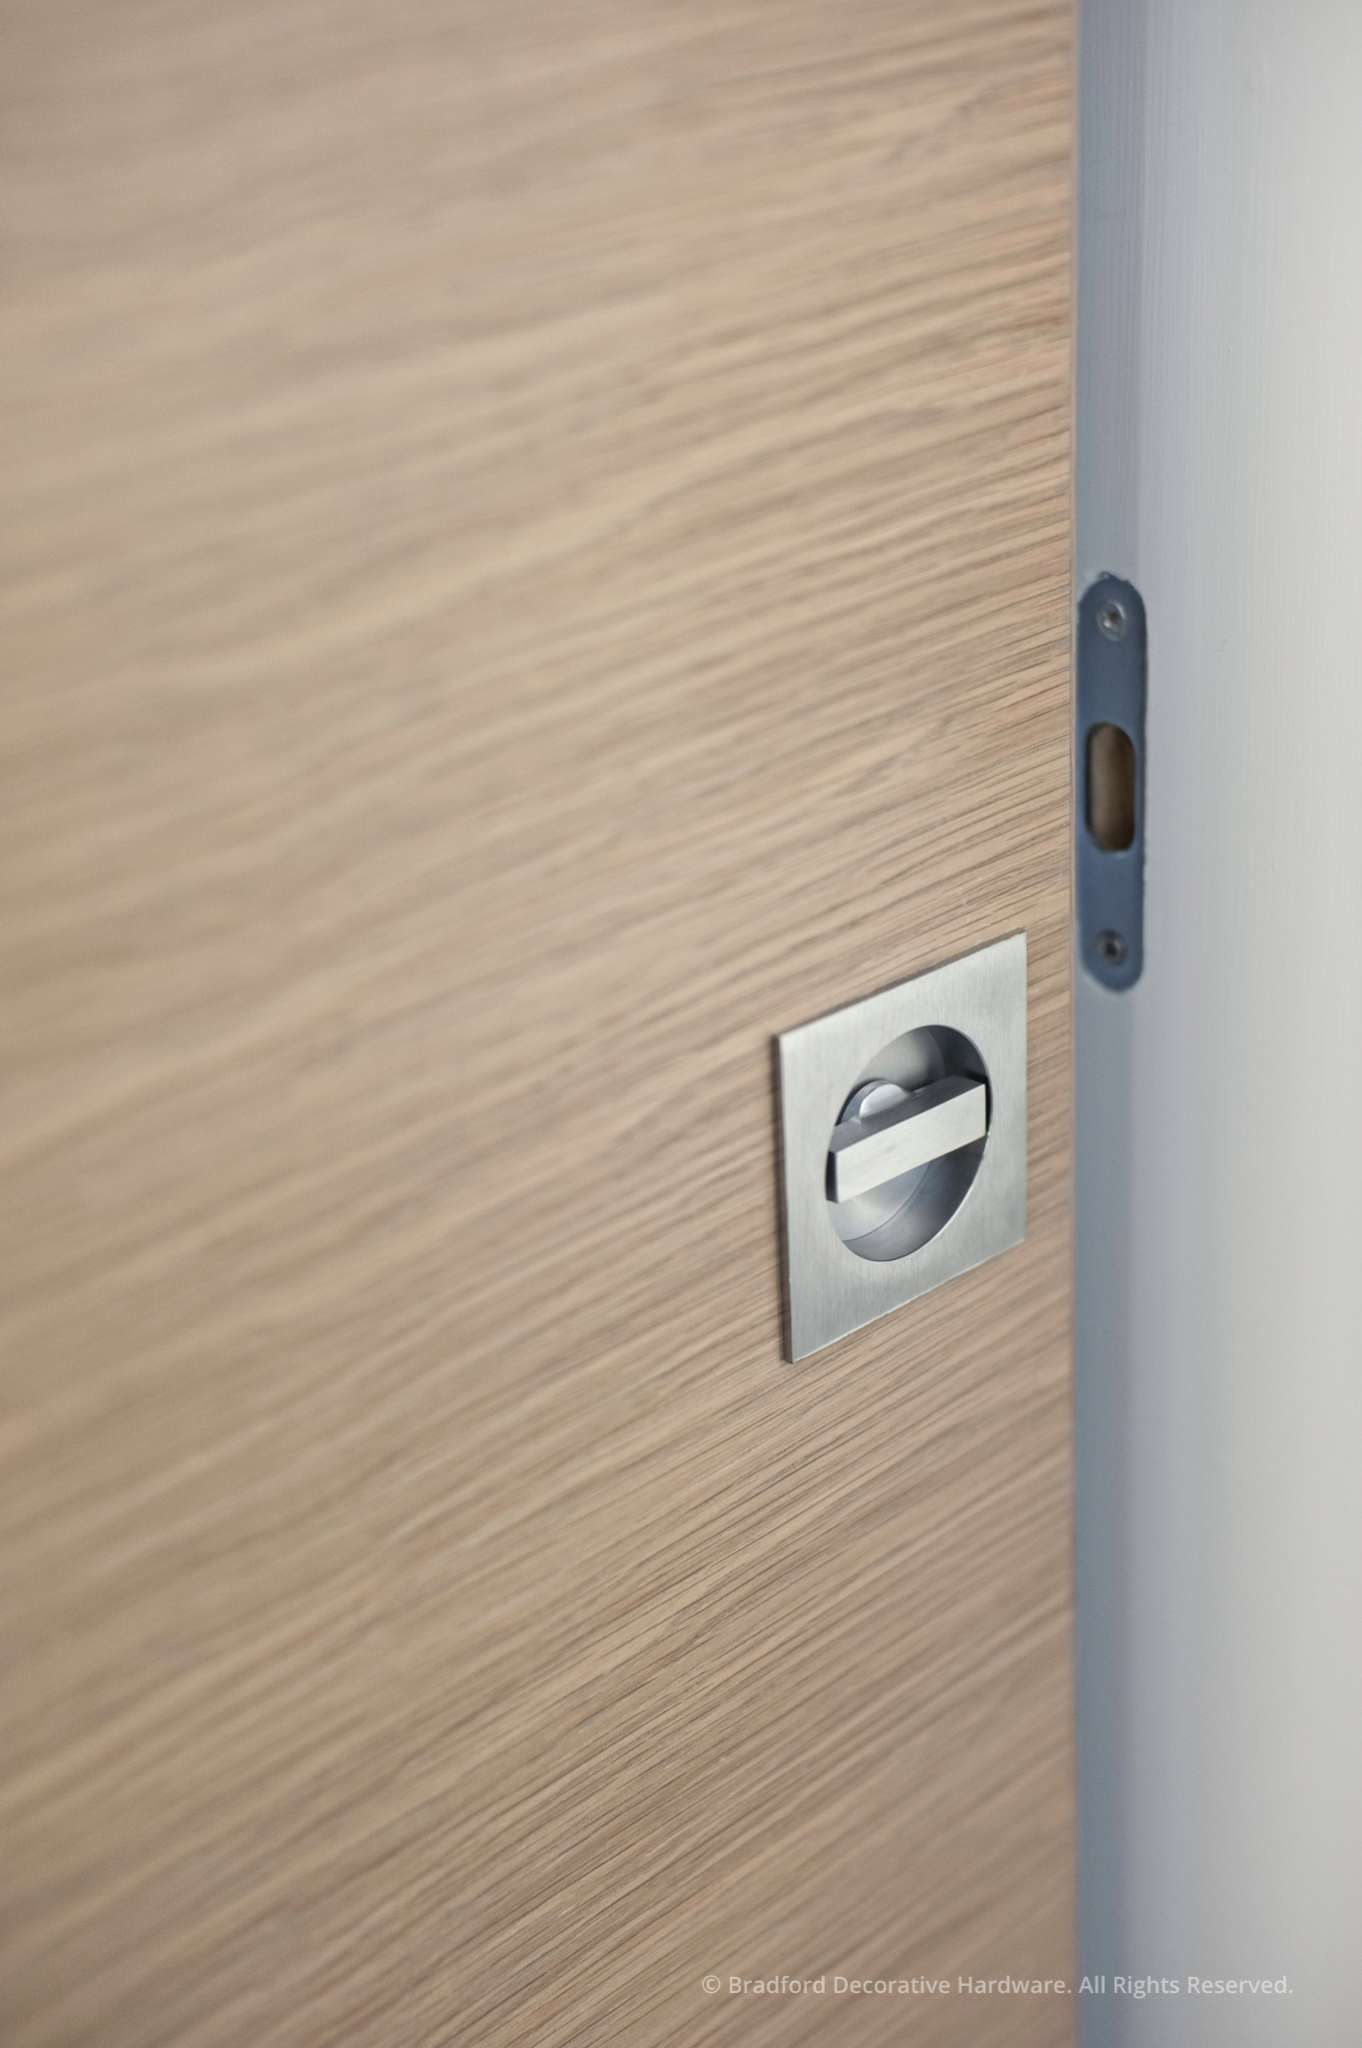 Cavilock pocket door locks | Hardware & Connections | Pinterest ...